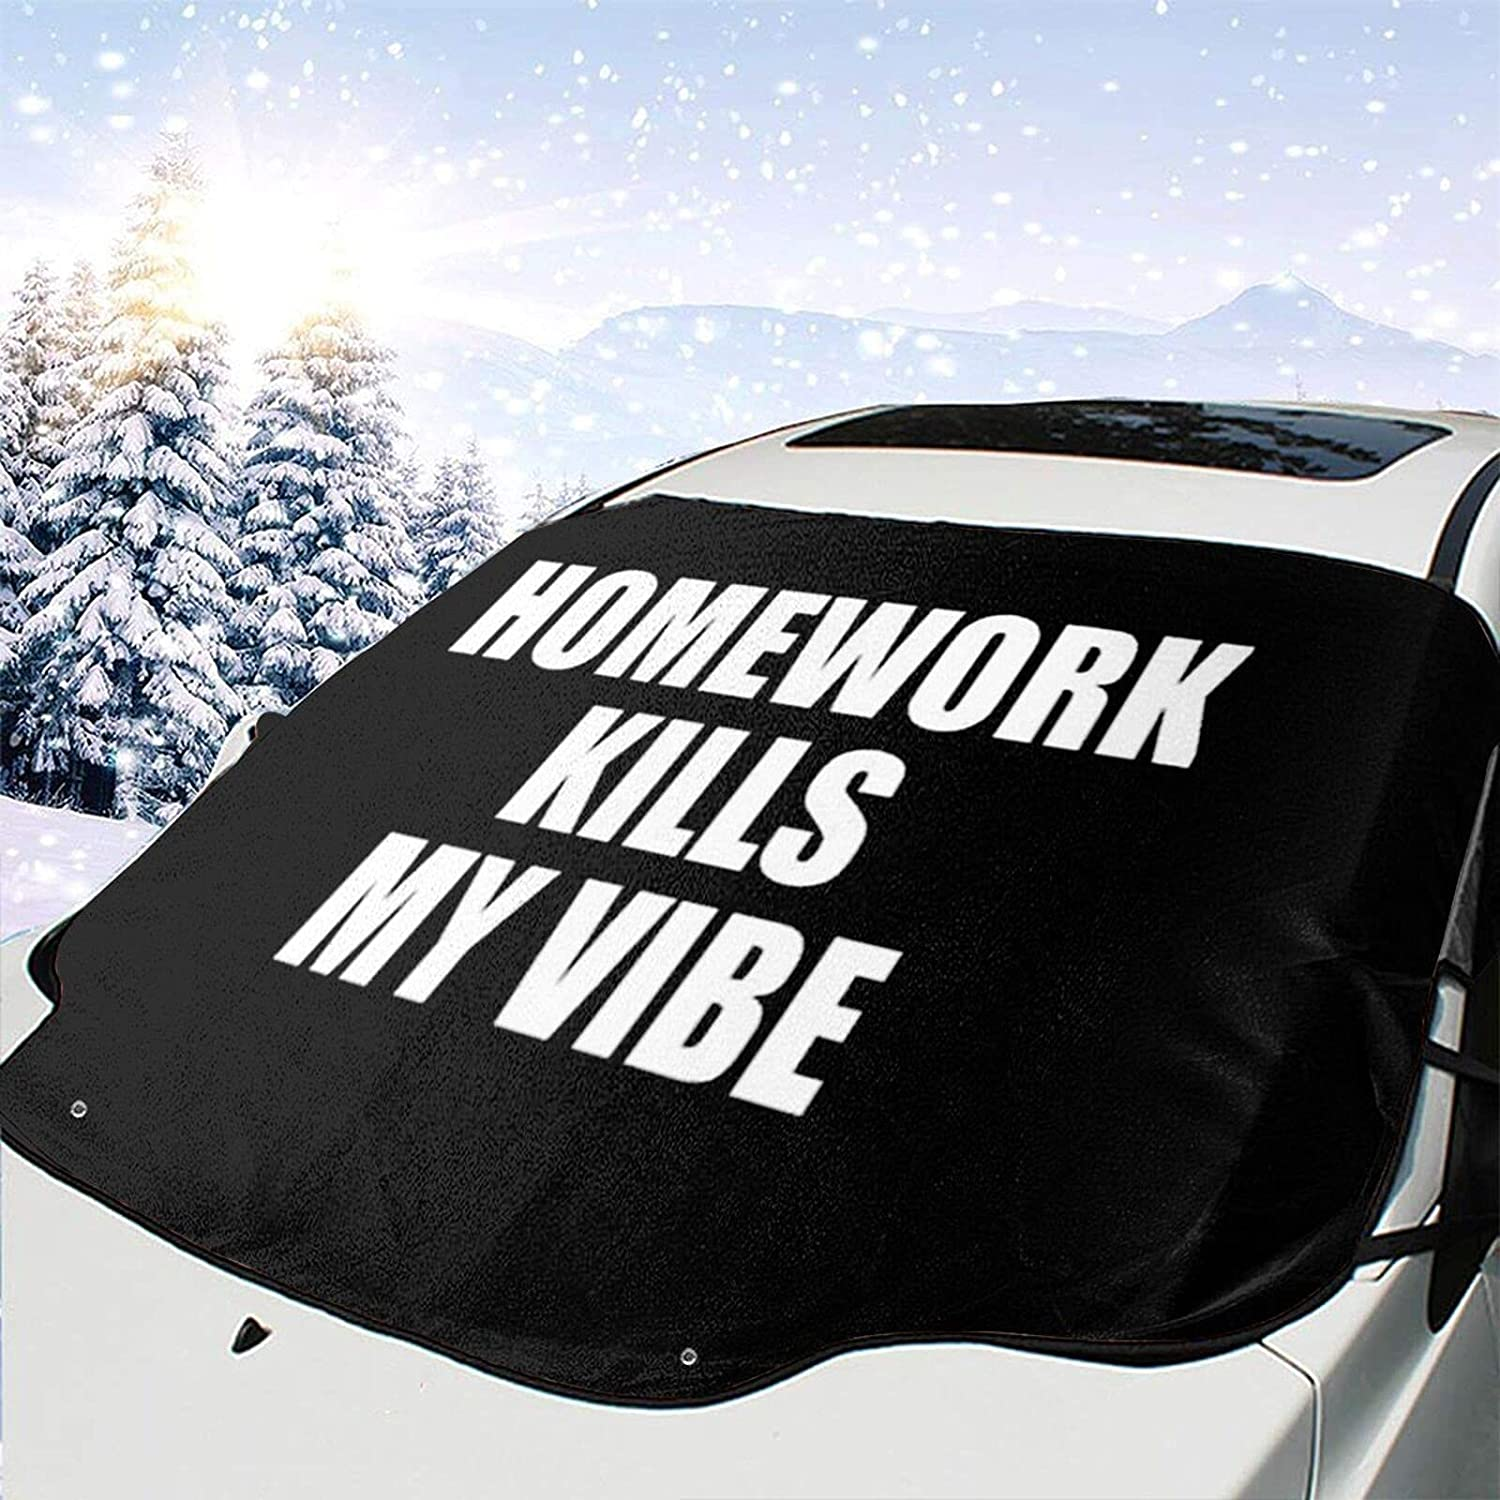 Homework Deluxe Kills My Vibe Windshield Snow Wiper Max 58% OFF Ice Removal Cover V